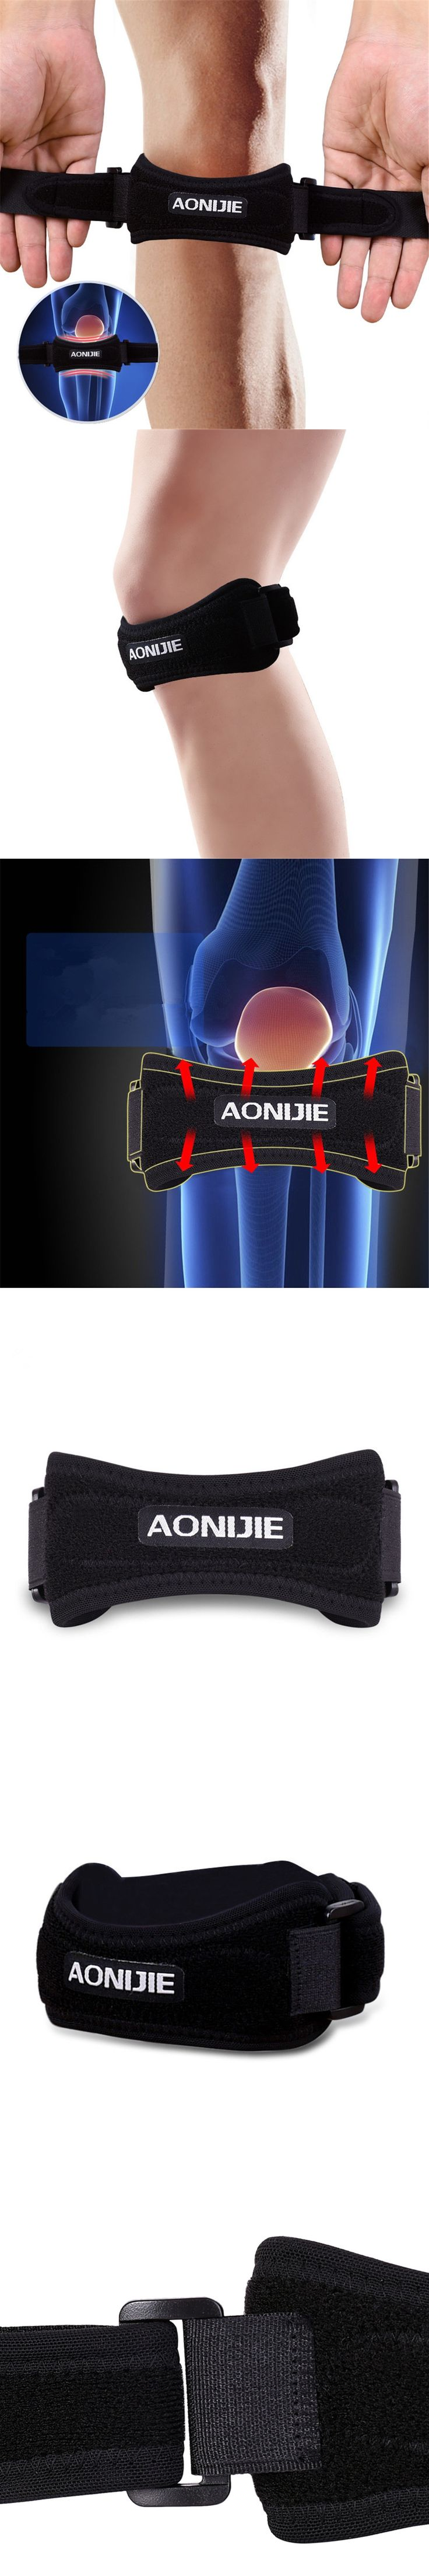 AONIJIE Sport Knee Protector Brace Running Basketball Knee Support Breathable Patella Shock Absorption Knee Pad for Volleyball